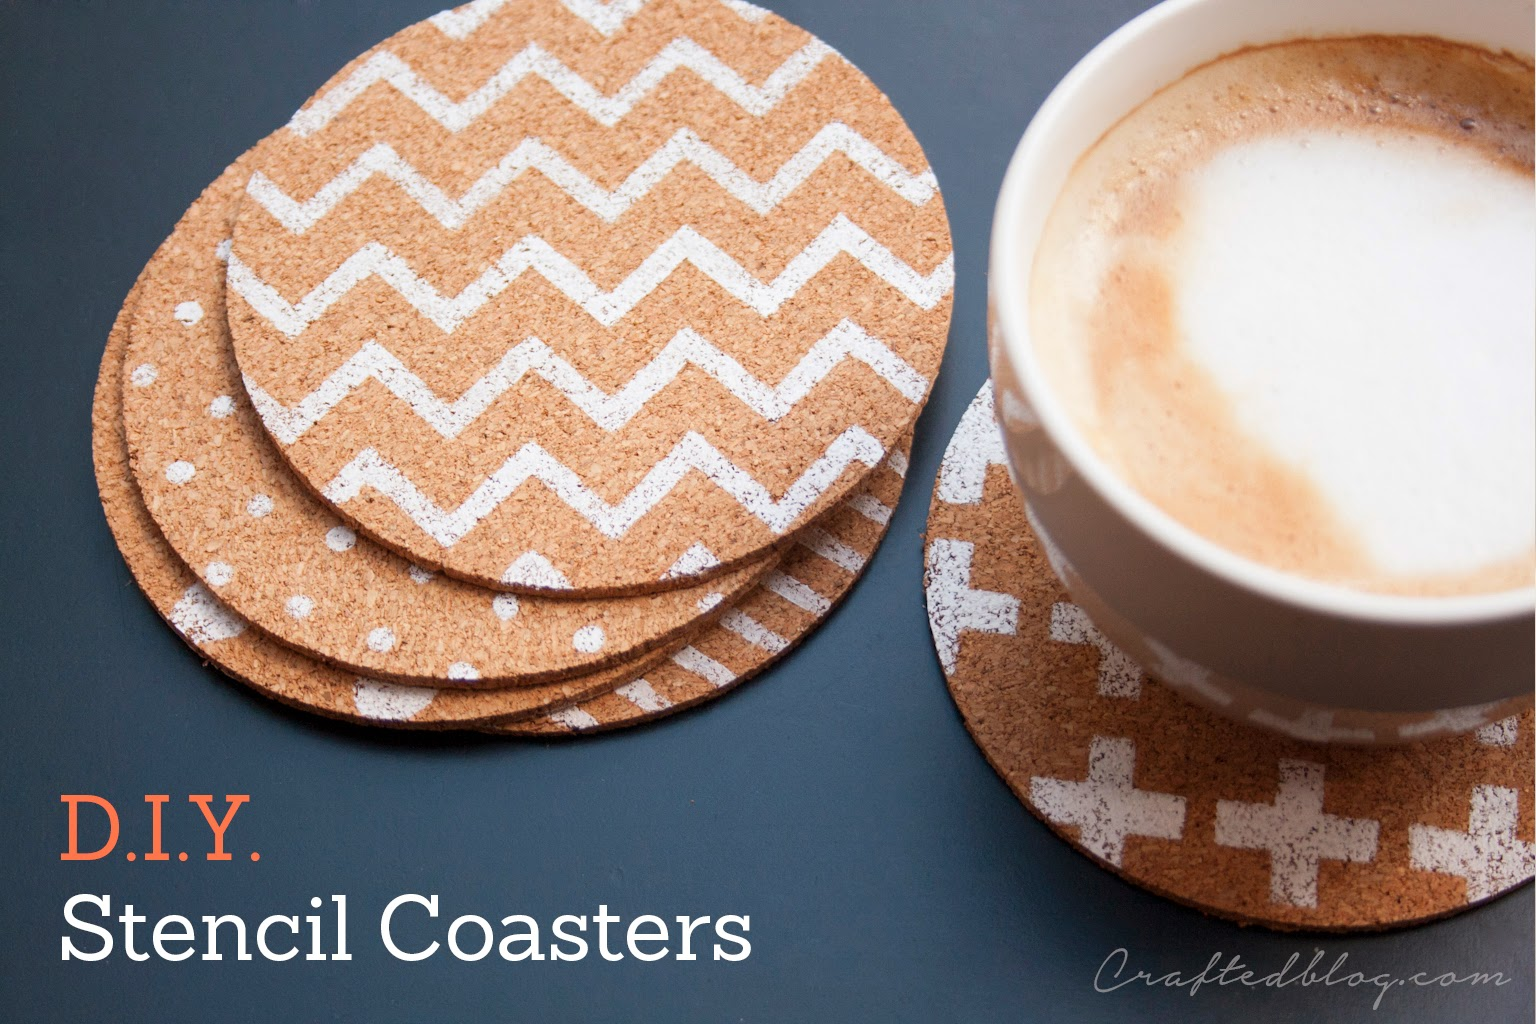 Diy Table Coasters Diy Projects Archives Page 2 Of 3 Crafted